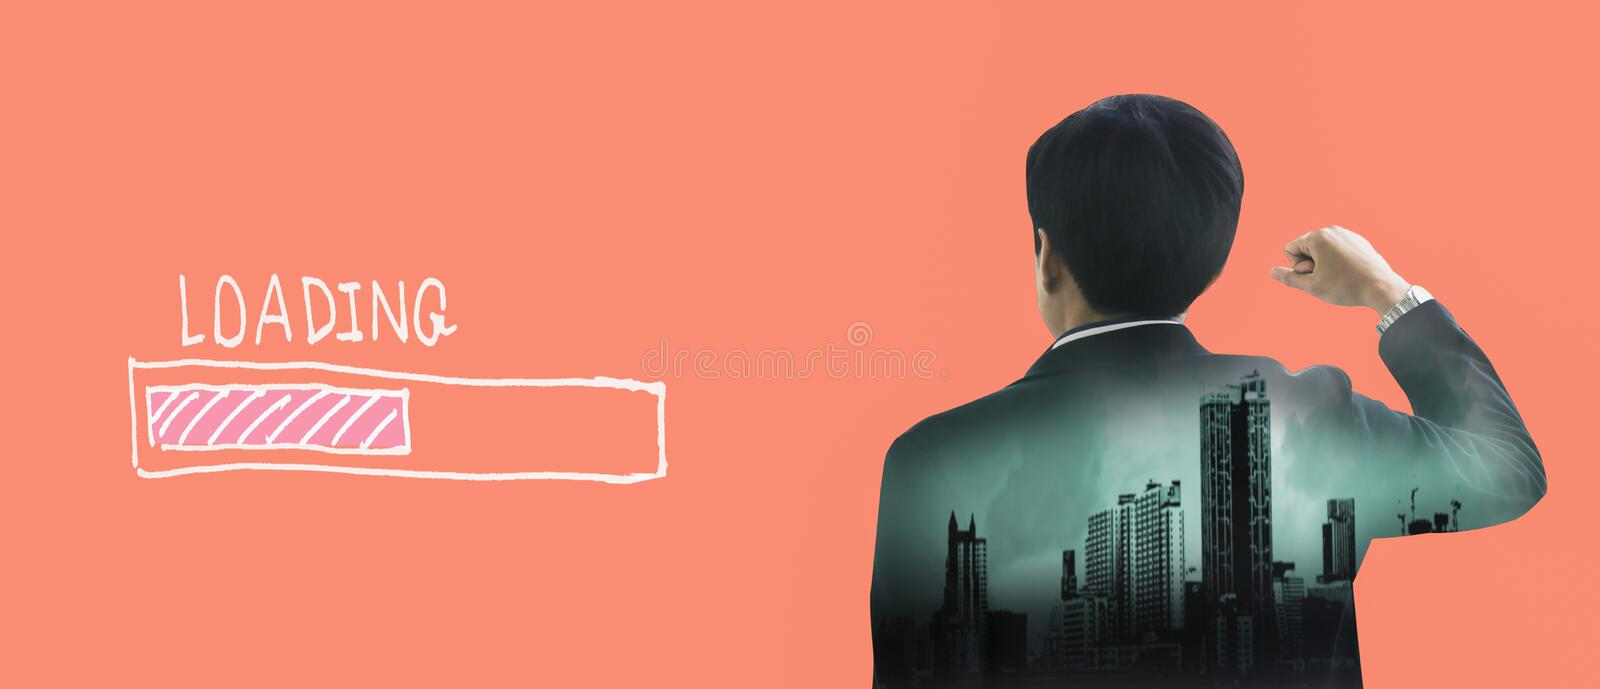 Double exposure back rear view businessman on pastel pink background, with loading icon, concept business strategy and leadership royalty free illustration